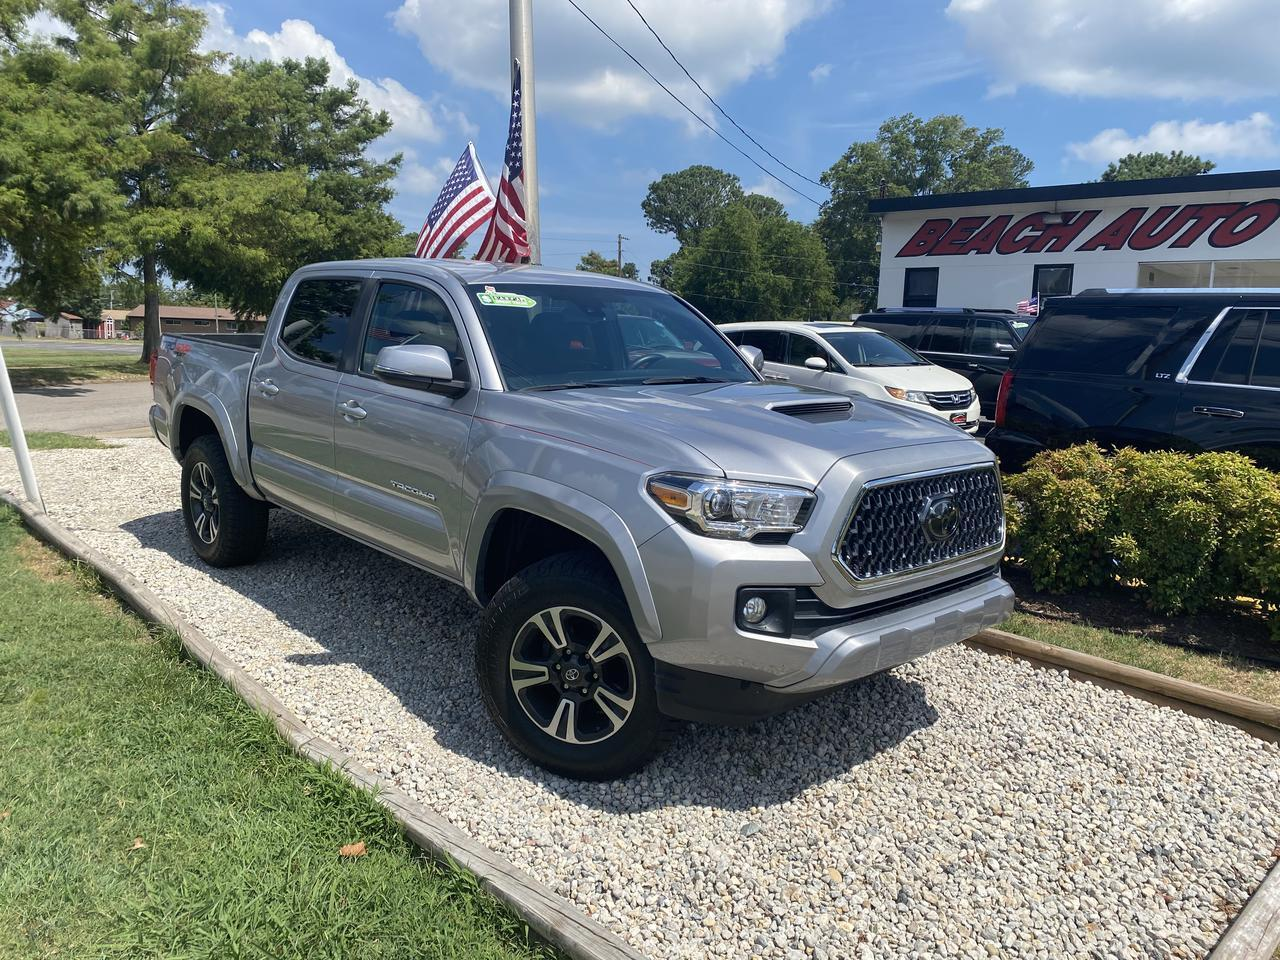 2018 TOYOTA TACOMA TRD SPORT DOUBLE CAB 4X4, WARRANTY, MANUAL, NAV, BLUETOOTH, BACKUP CAM, 1 OWNER, LOW MILES! Norfolk VA